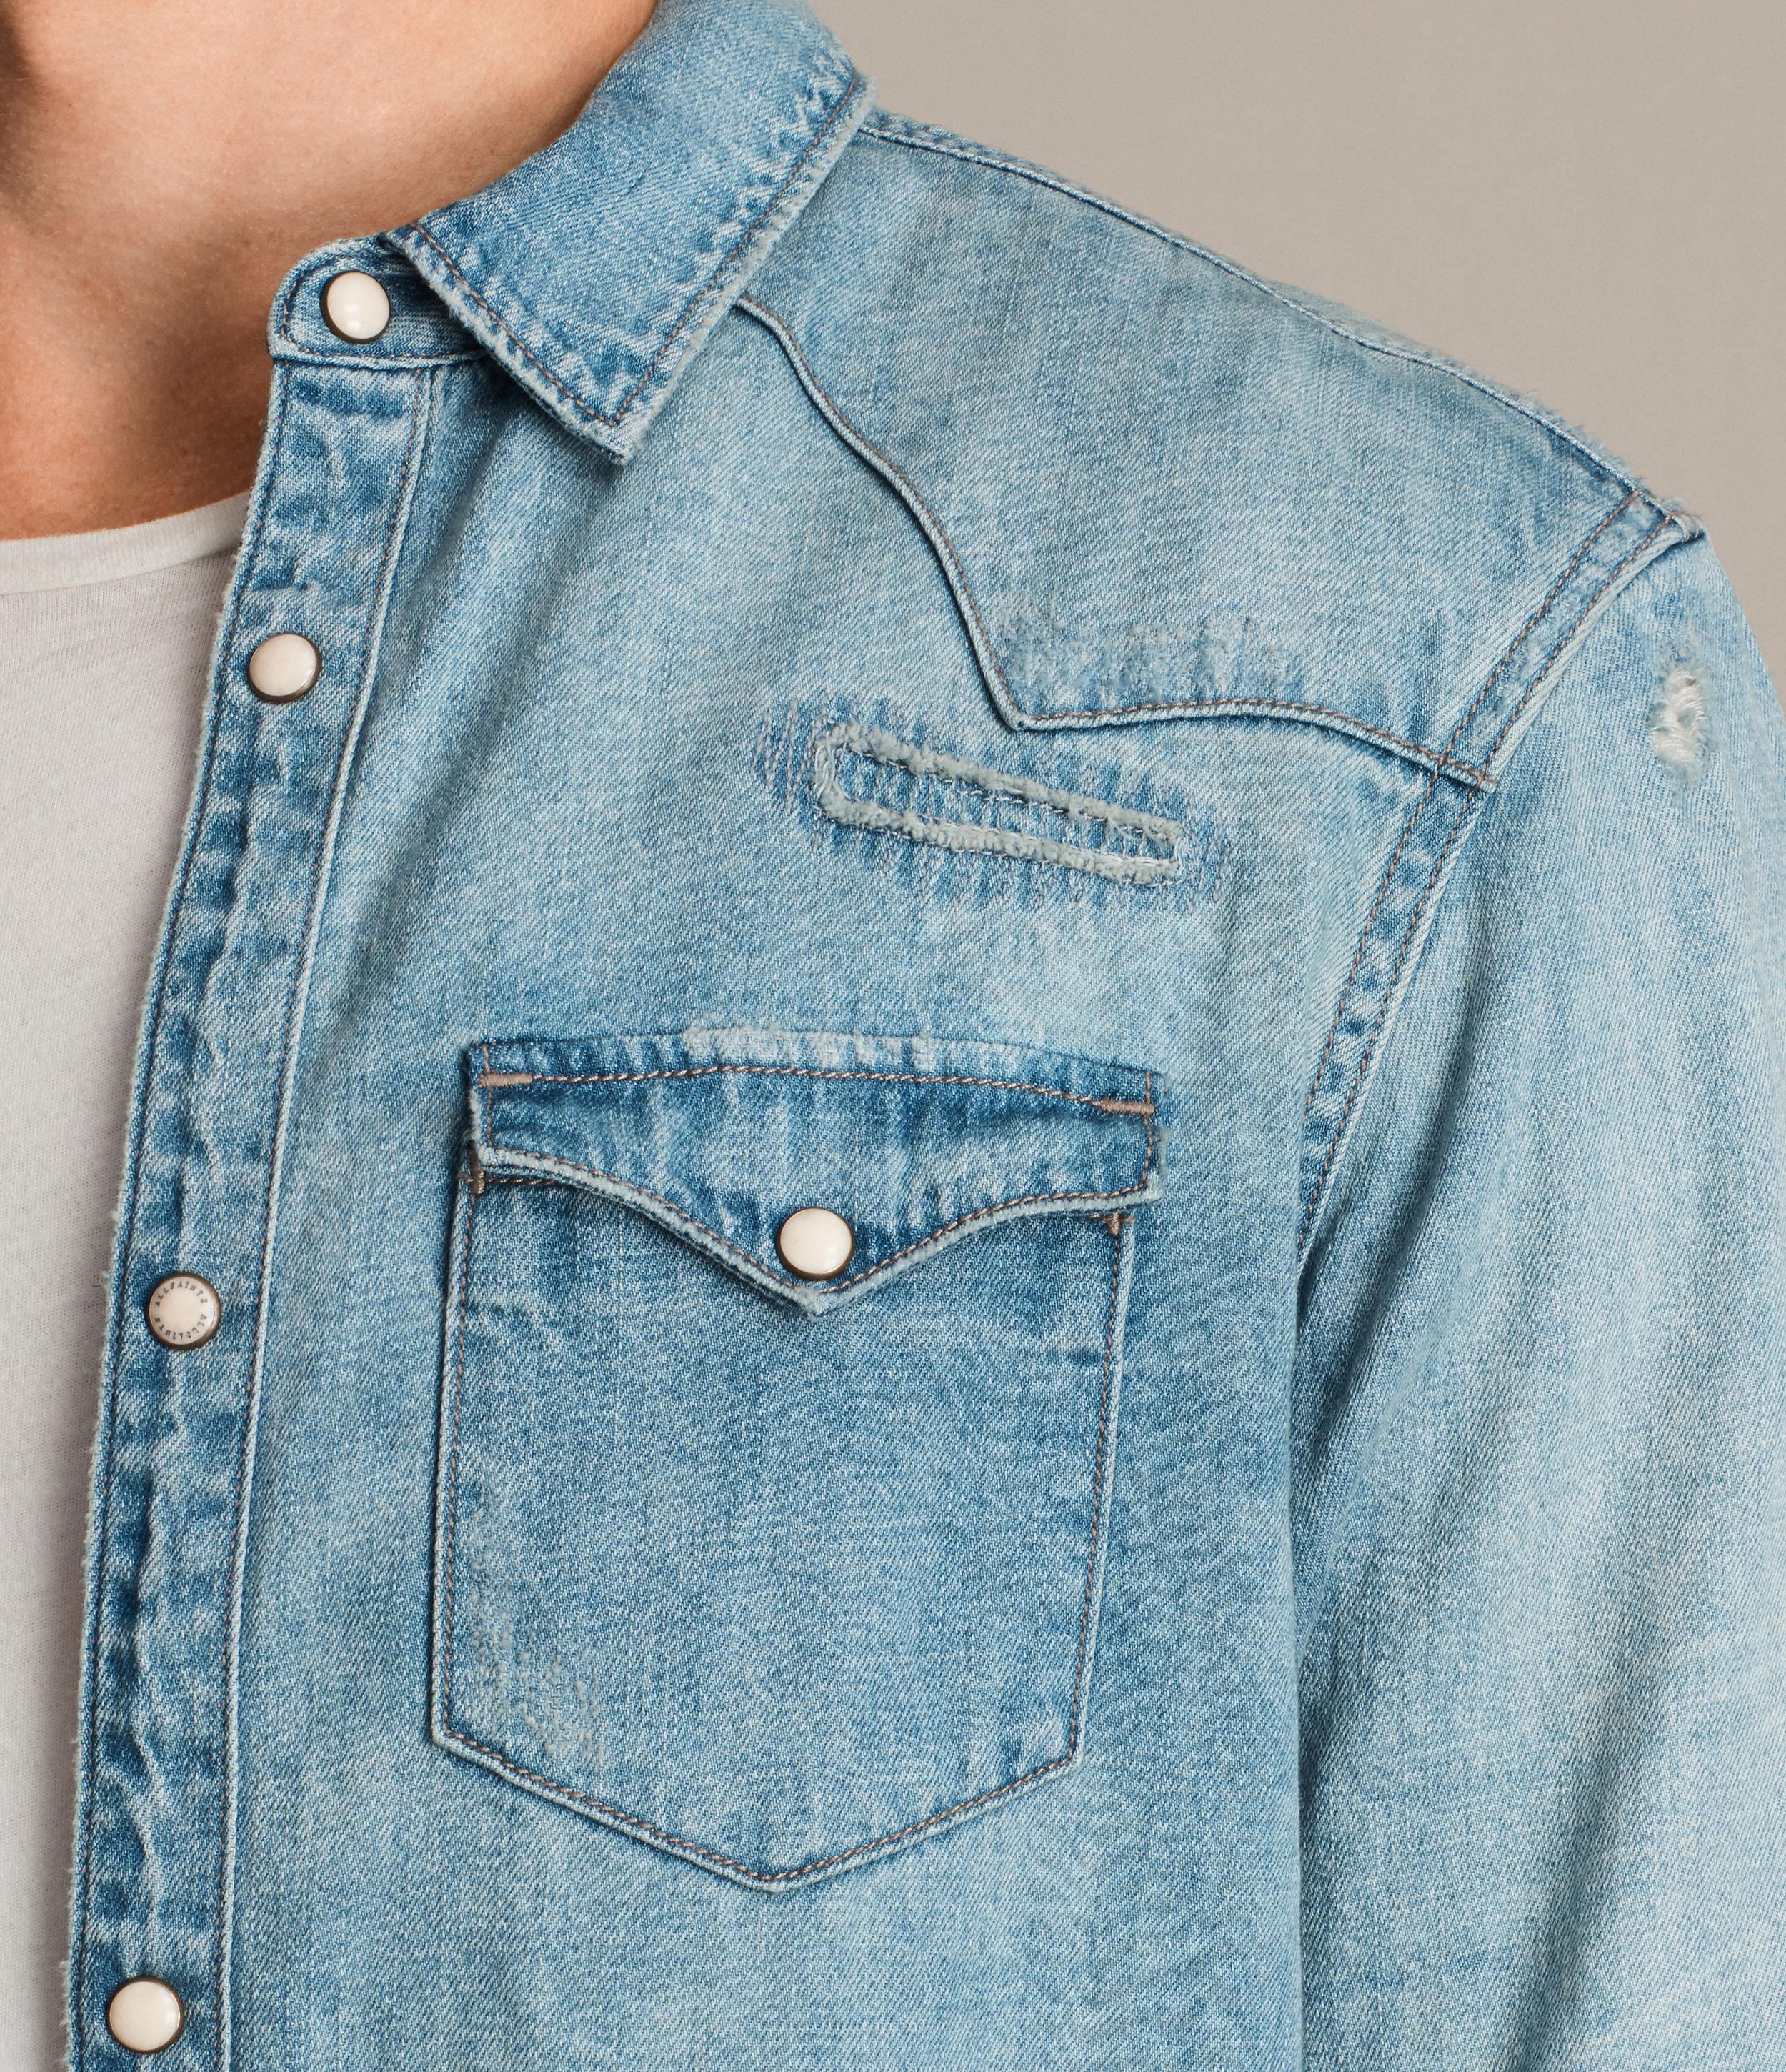 AllSaints Doomer Denim Shirt in Light Indigo Blue (Blue) for Men